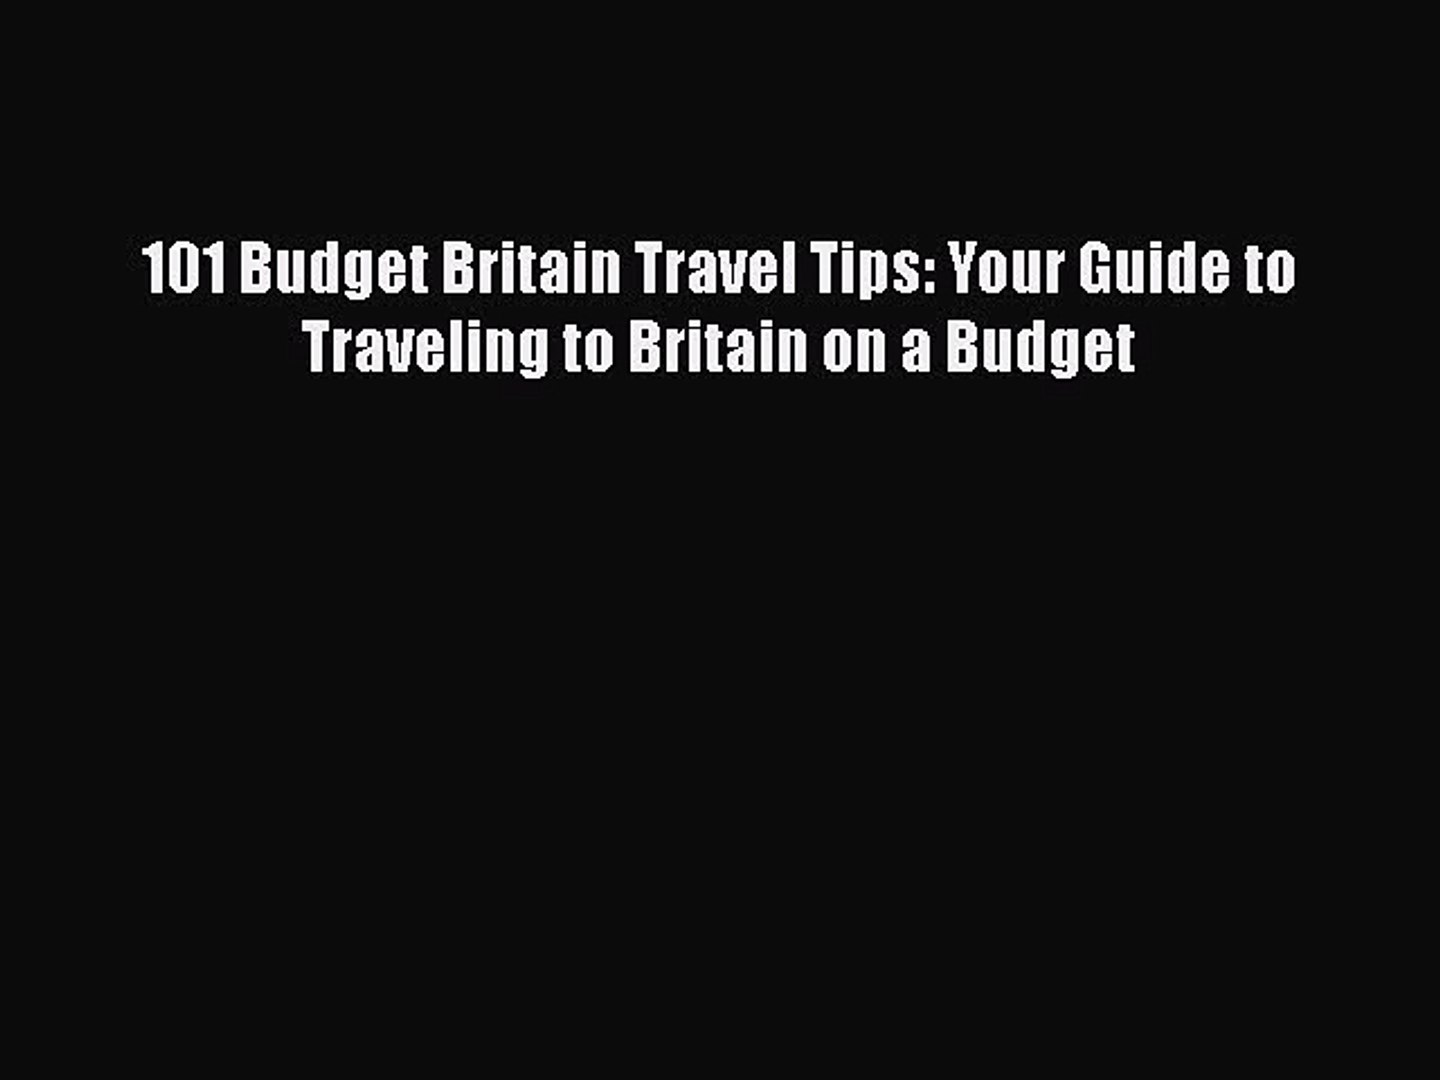 101 Budget Britain Travel Tips: Your Guide to Traveling to Britain on a Budget [PDF Download]